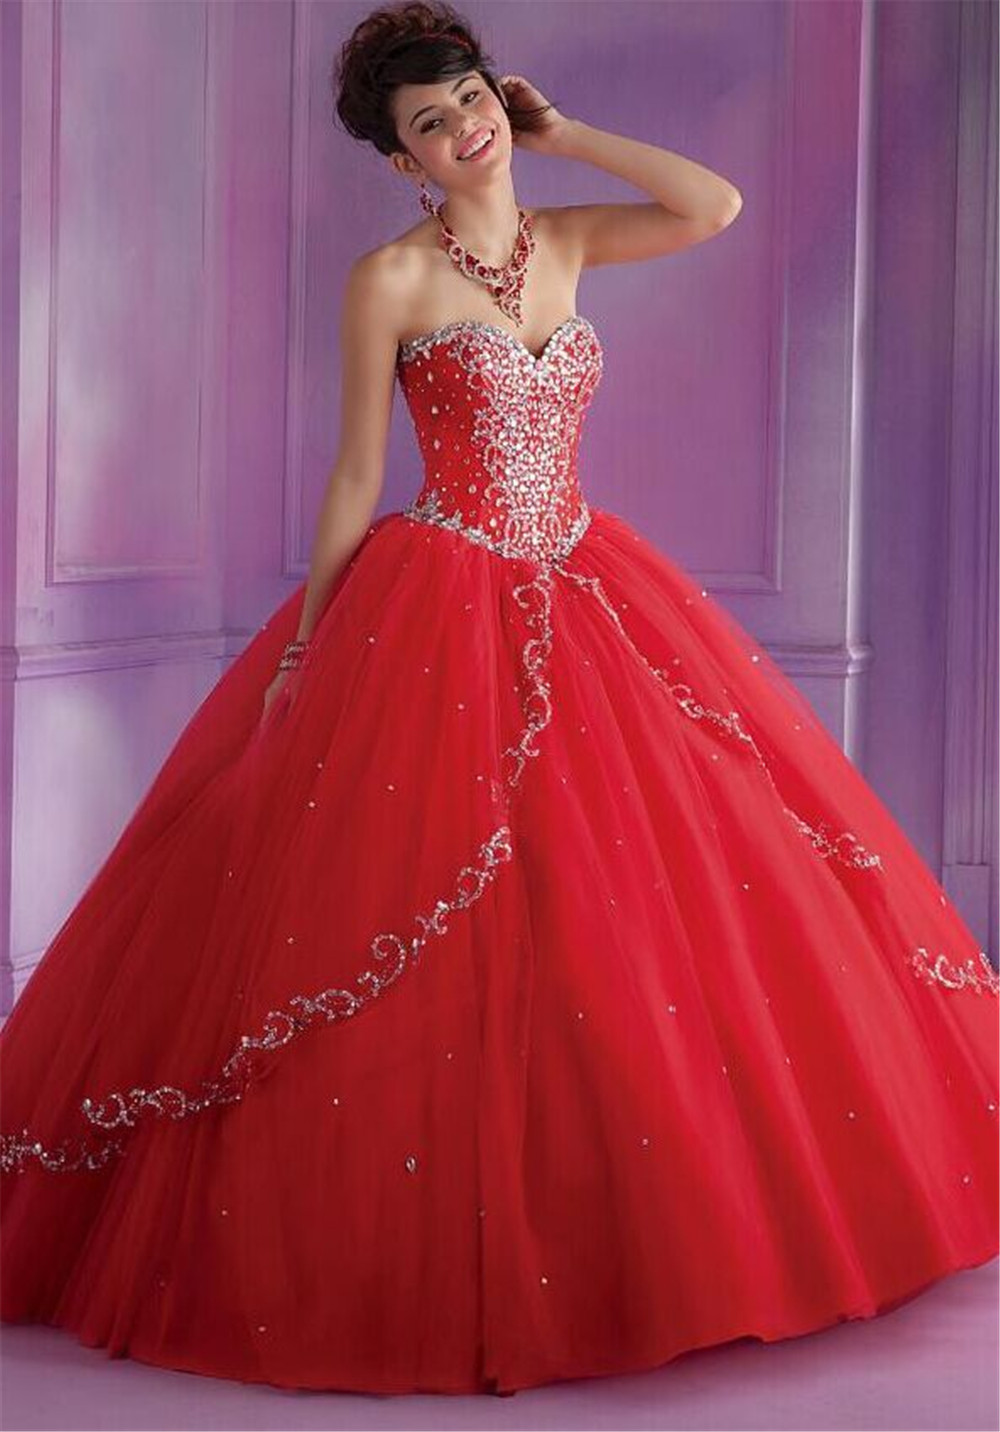 Best Selling 2015 Coral Quinceanera Dresses for Sweet 16 Girls ...